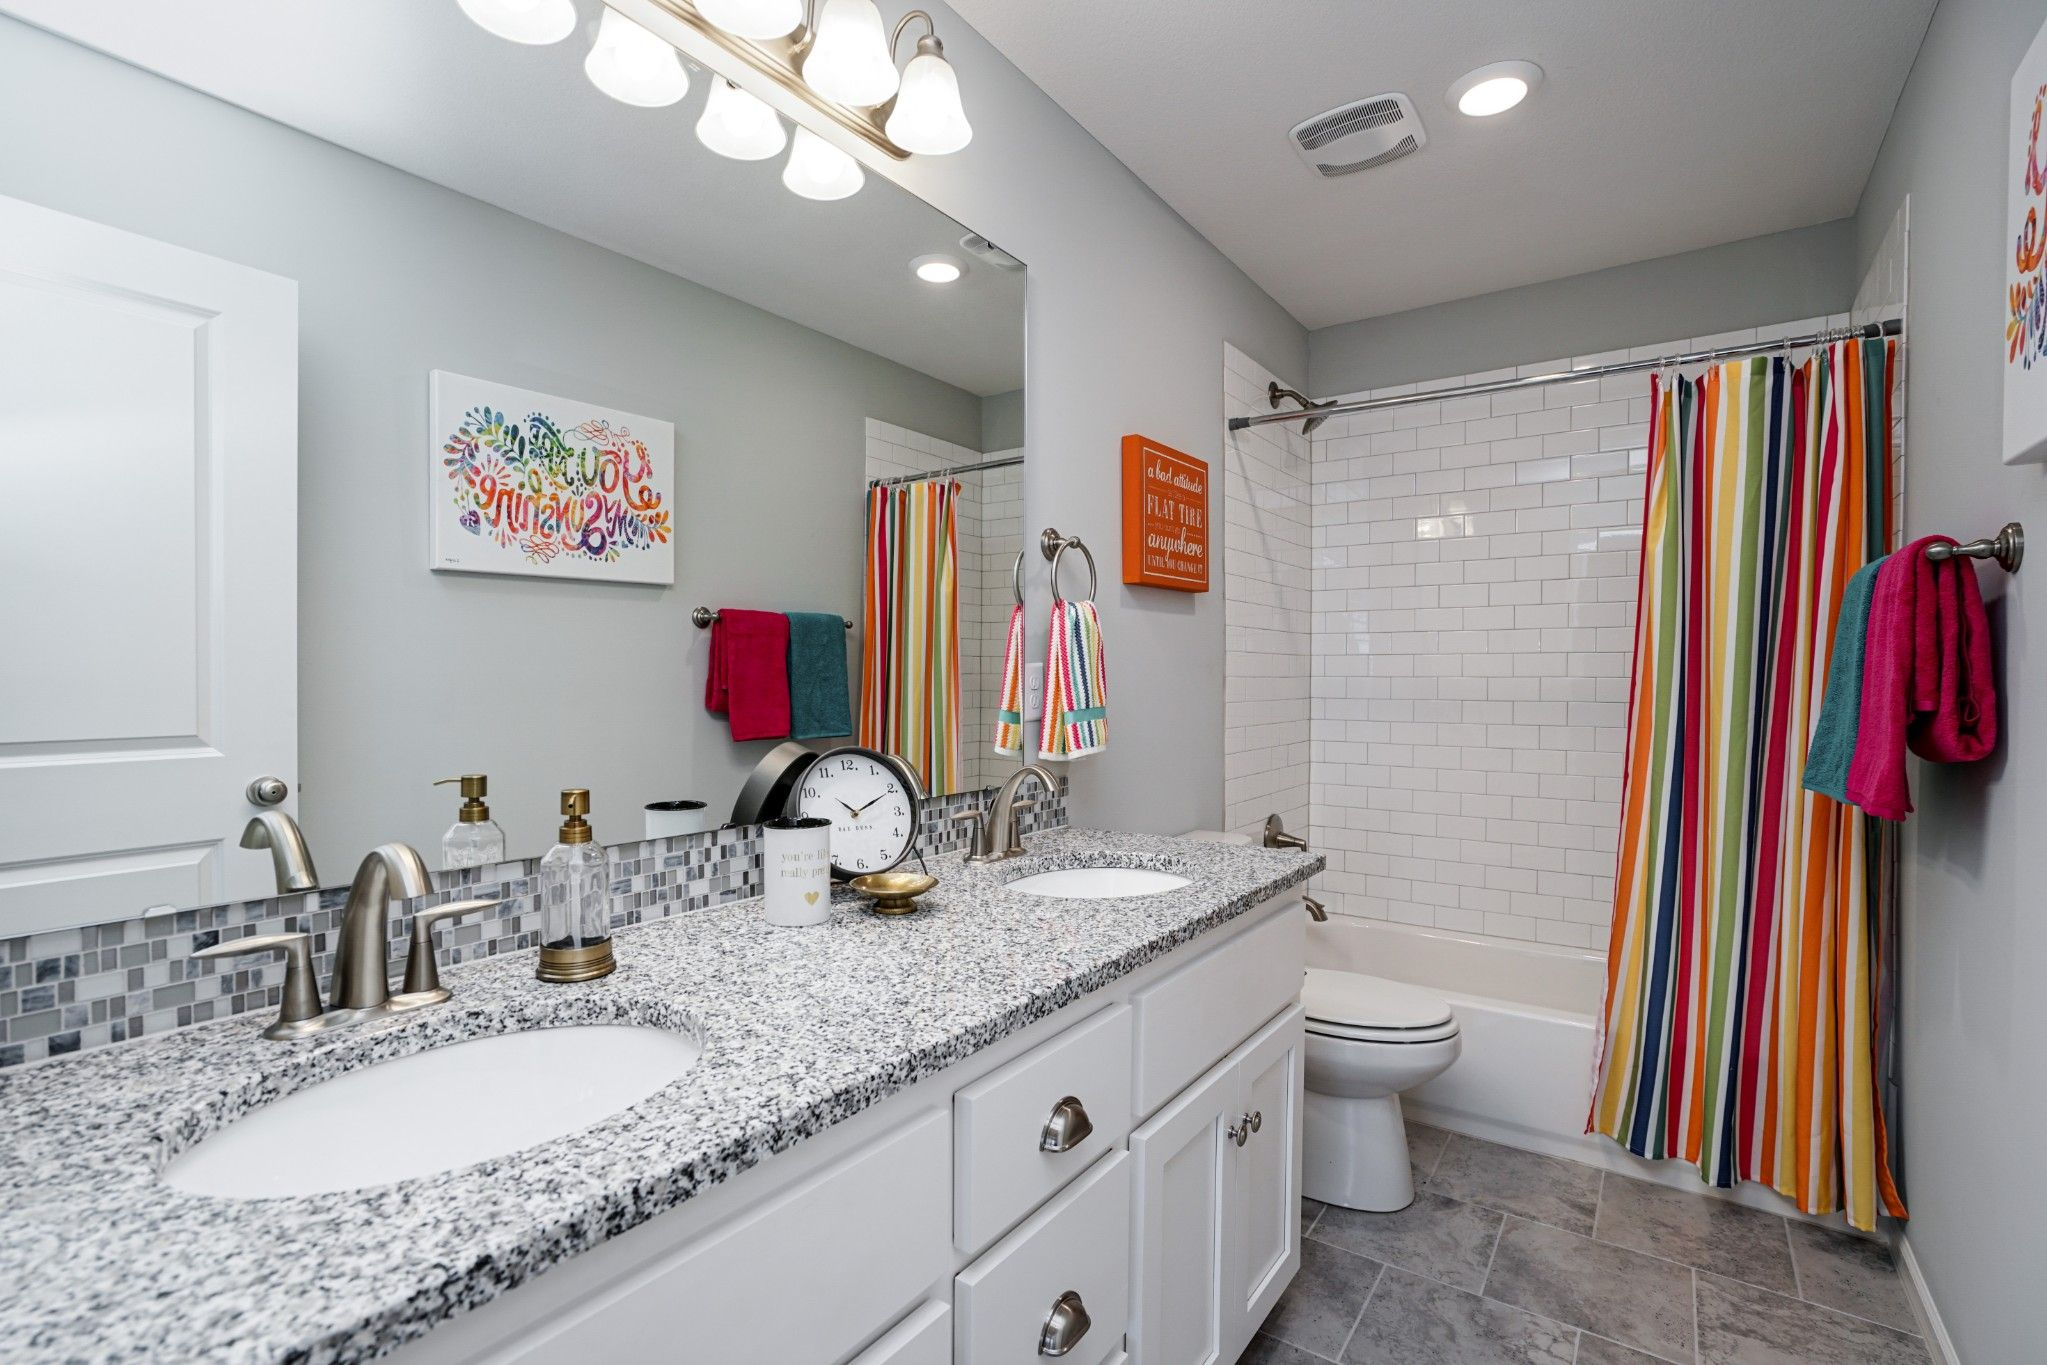 Bathroom featured in the Palmer - IA By Summit Homes in Des Moines, IA